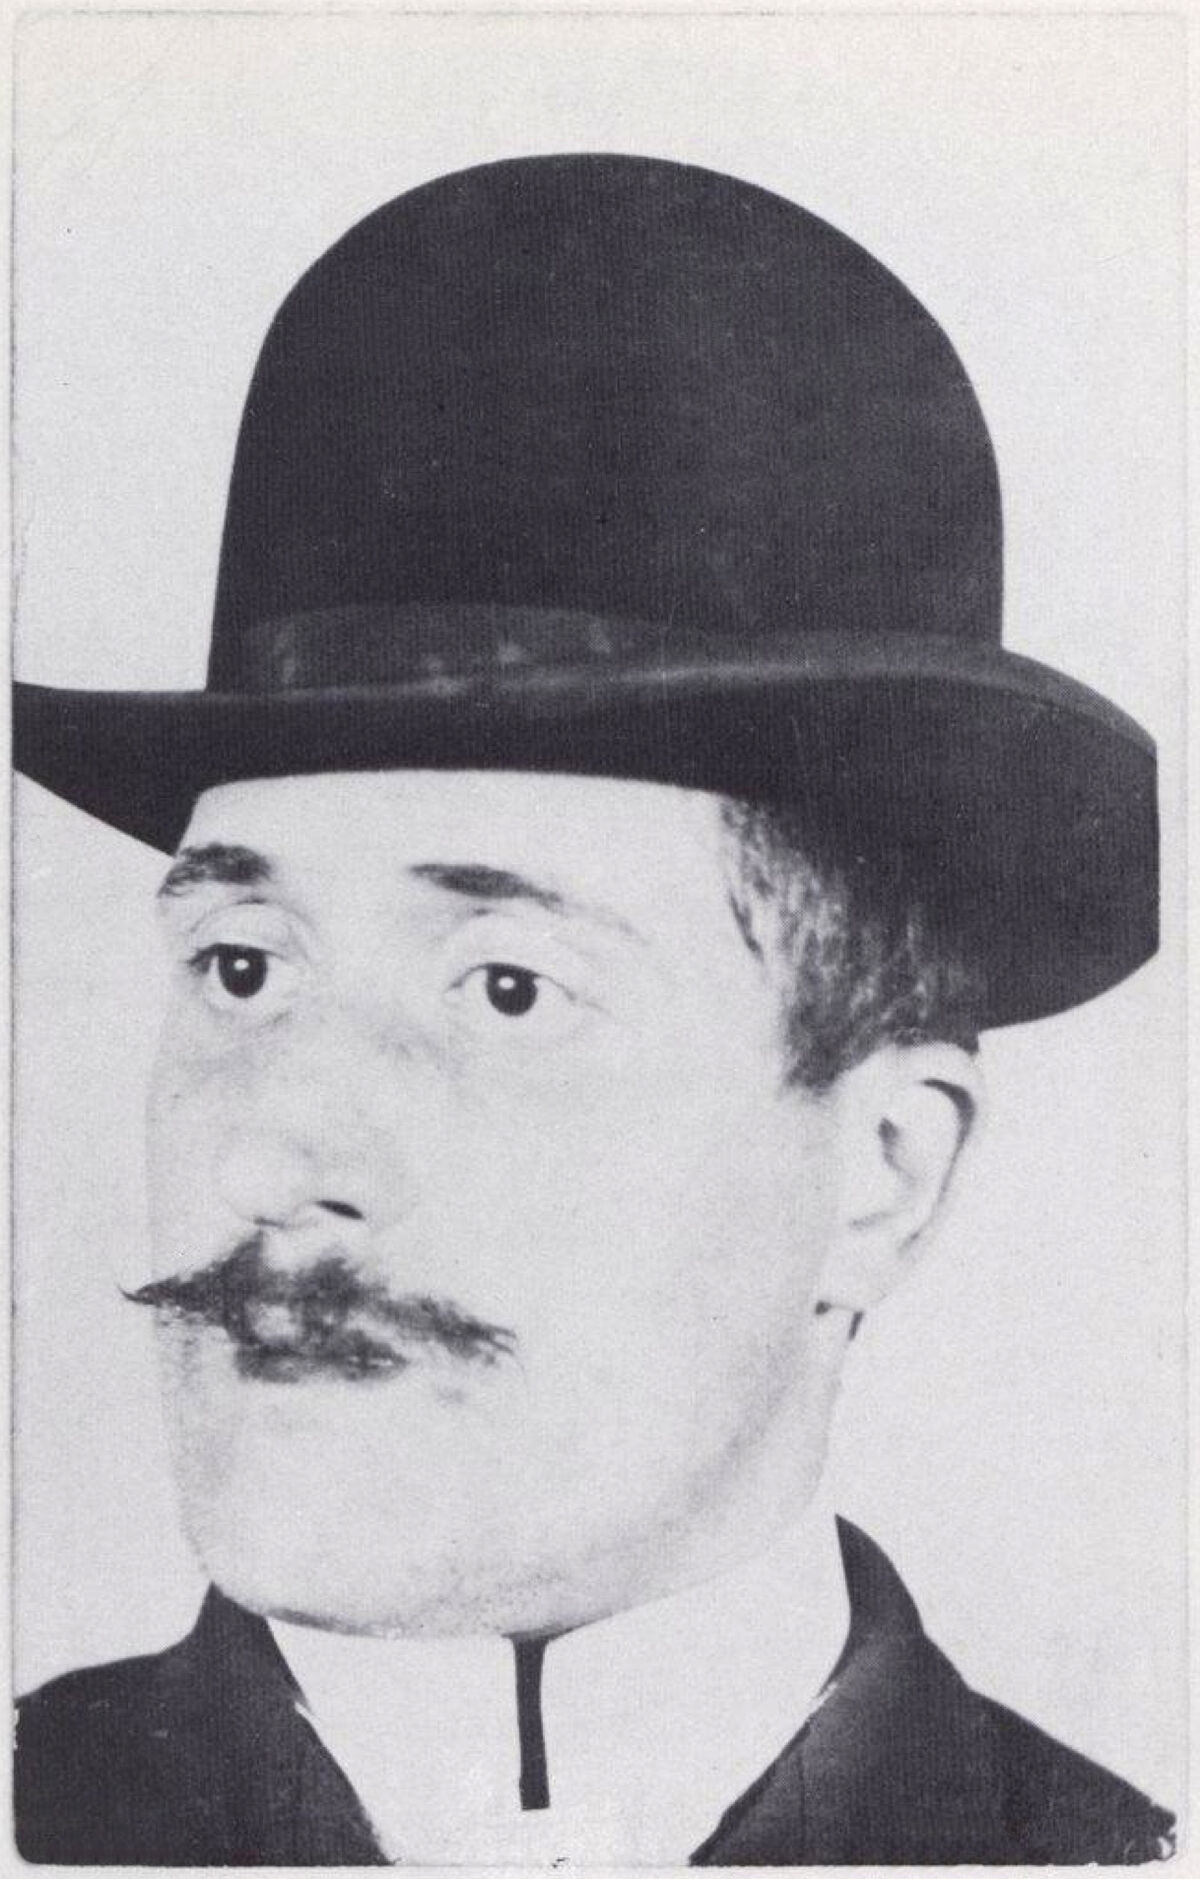 Guillaume Apollinaire, 1902. Photo via Wikimedia Commons.